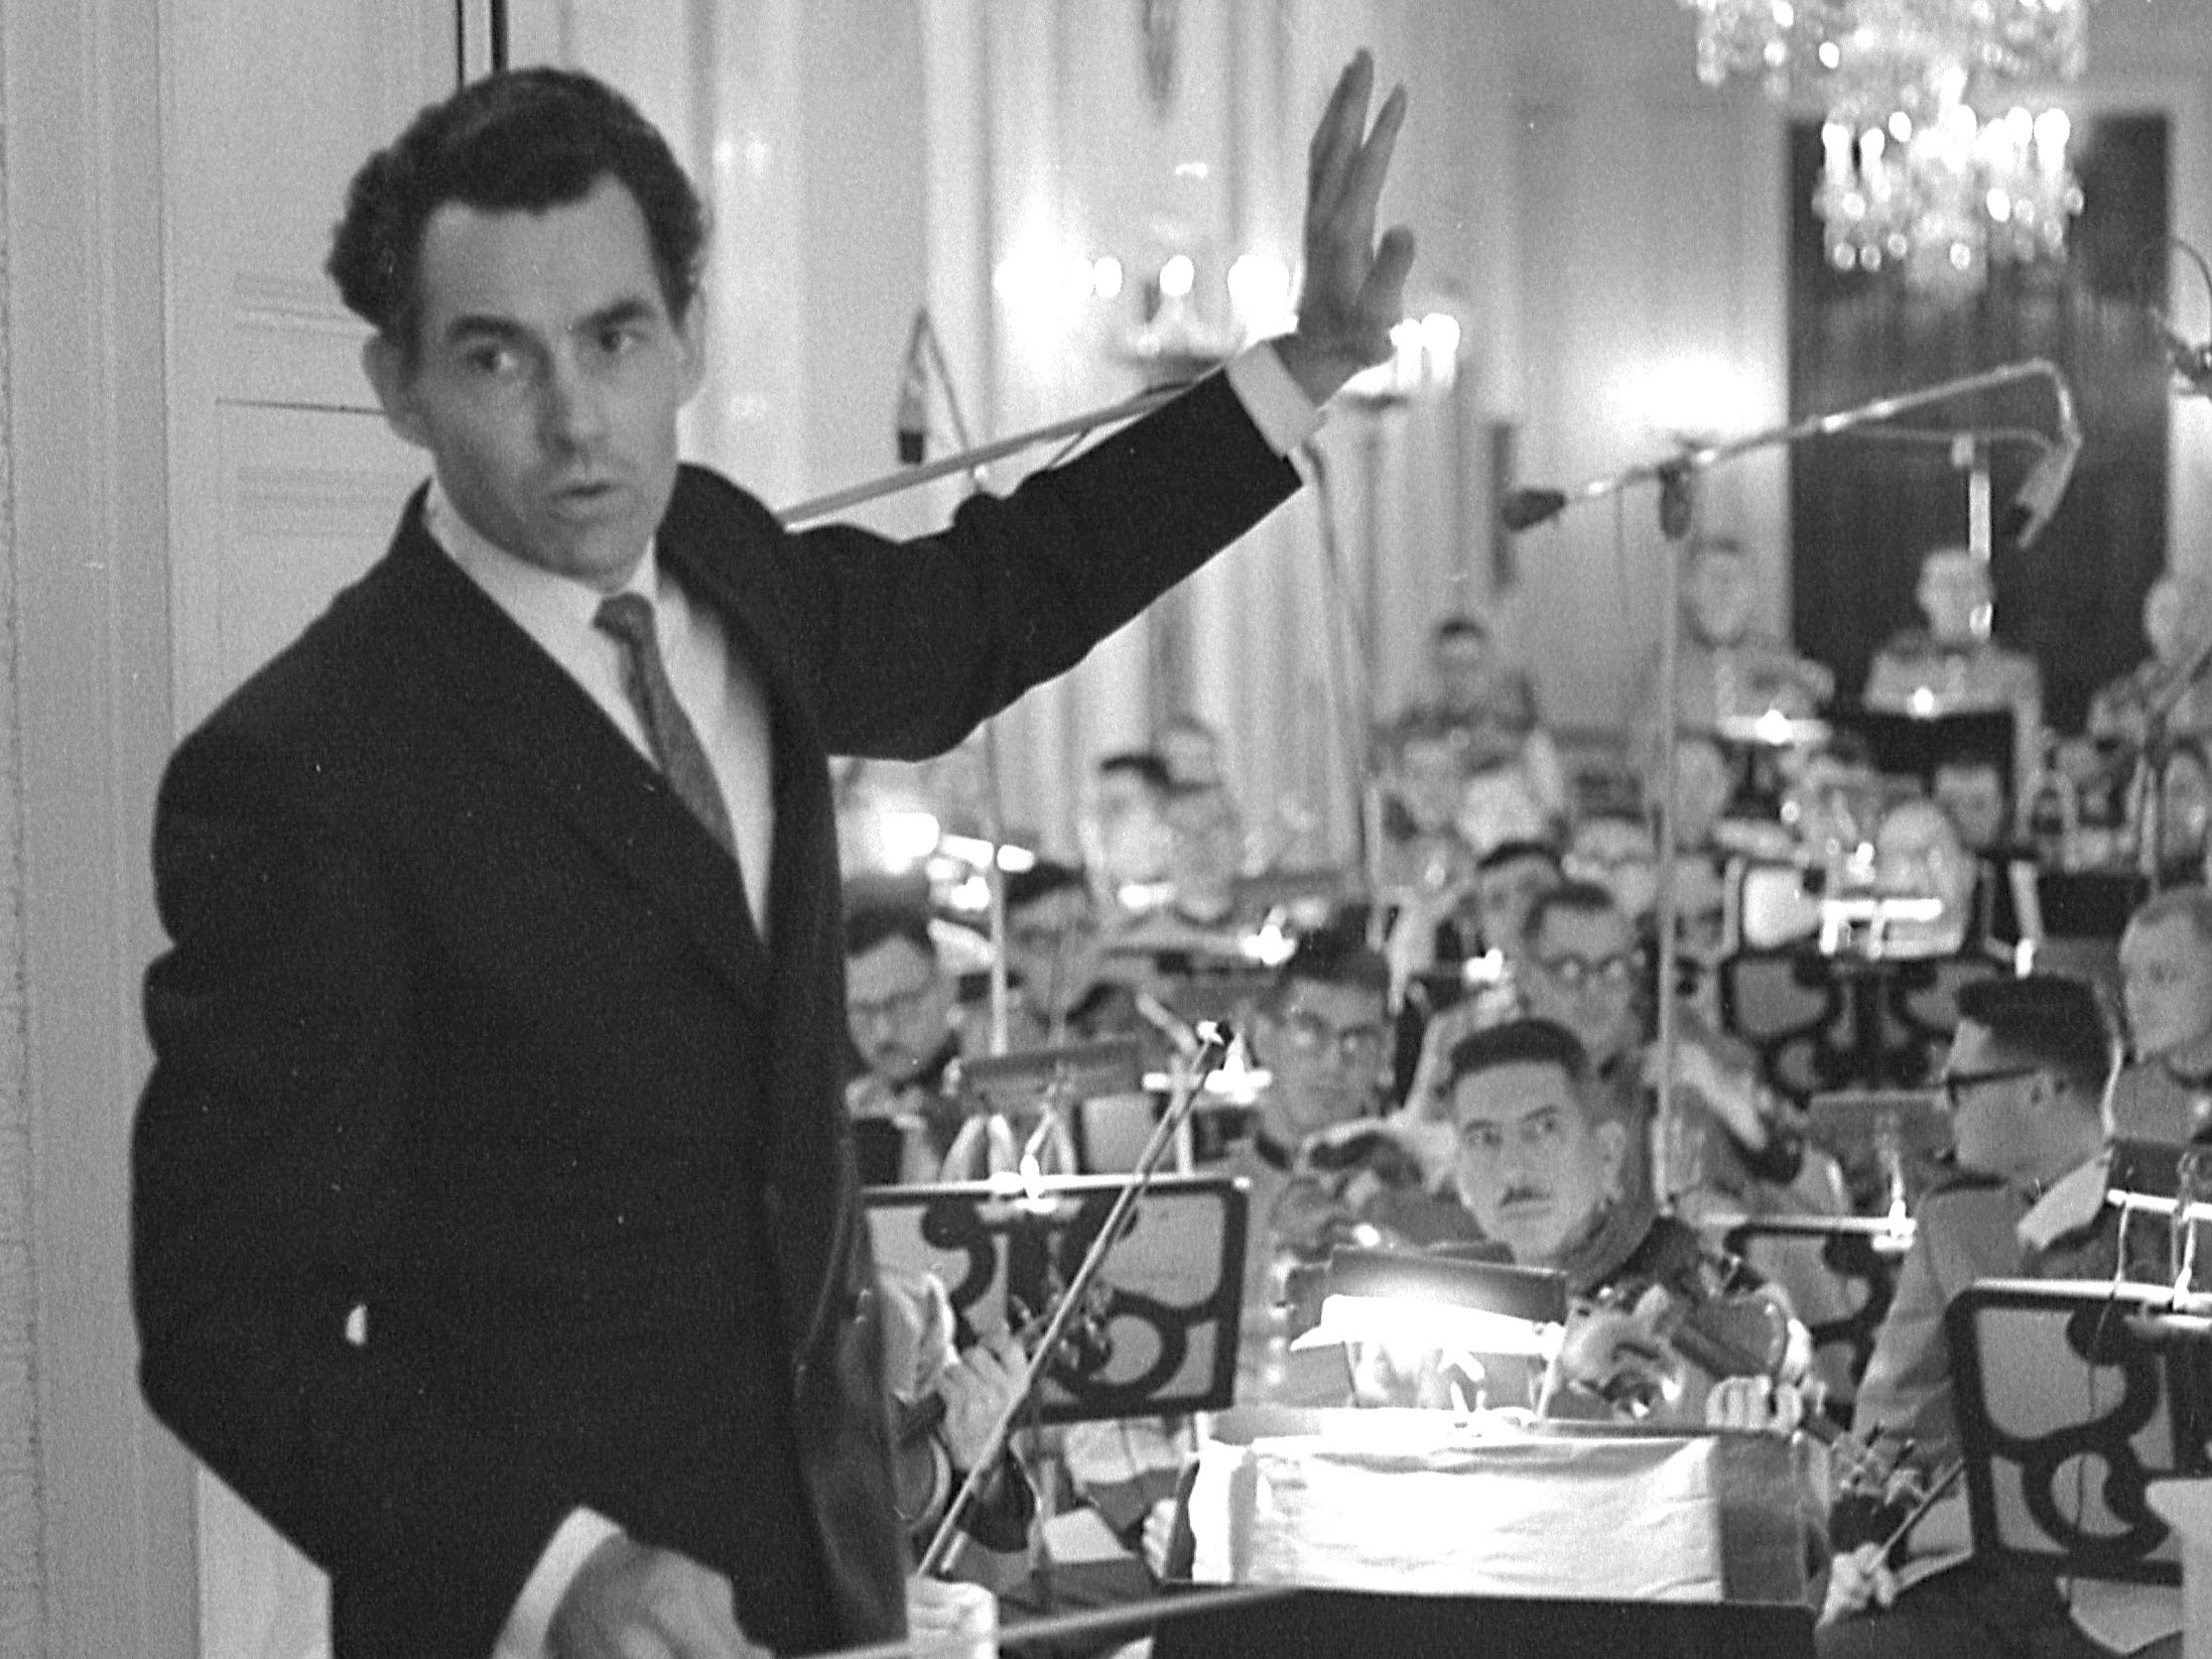 Kenneth Schermerhorn directs the Marine Band at the White House for a performance by the American Ballet Theatre on May 26, 1968. His wife, ballerina Lupe Serrano, was in the ballet company. Four months later, Schermerhorn took over as conductor and music director of the Milwaukee Symphony Orchestra.